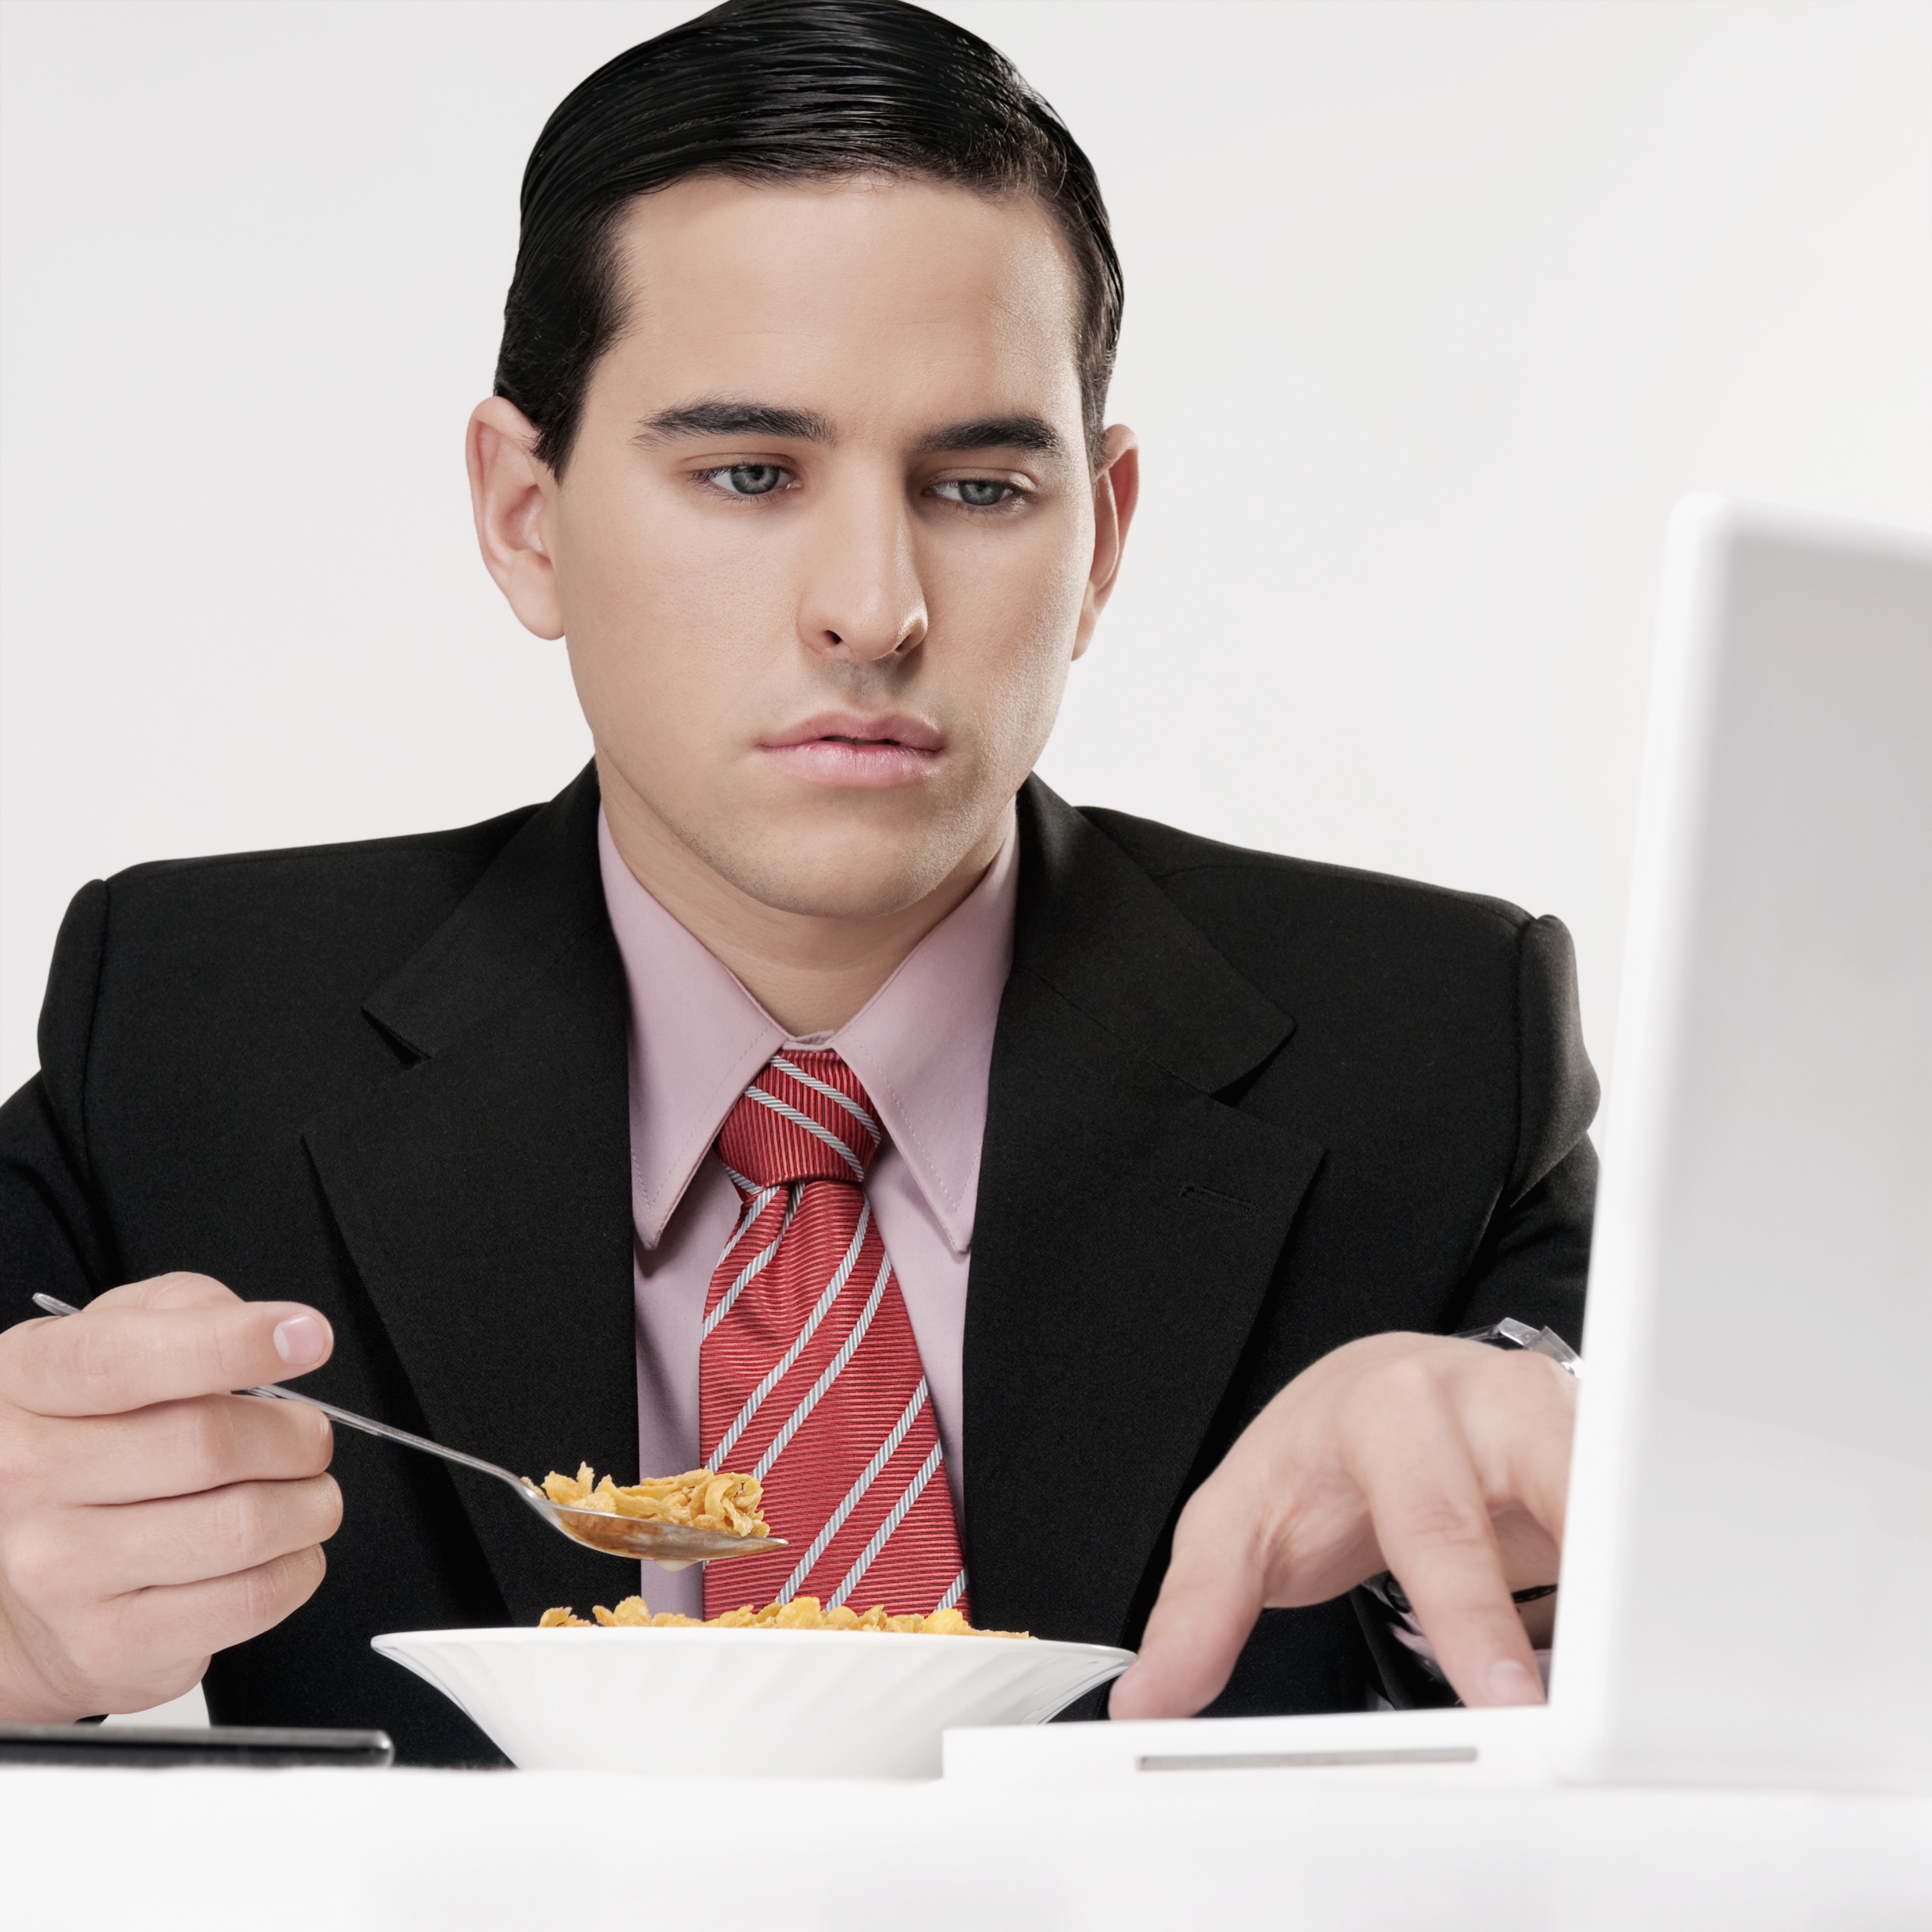 Businessman working on a laptop at breakfast table